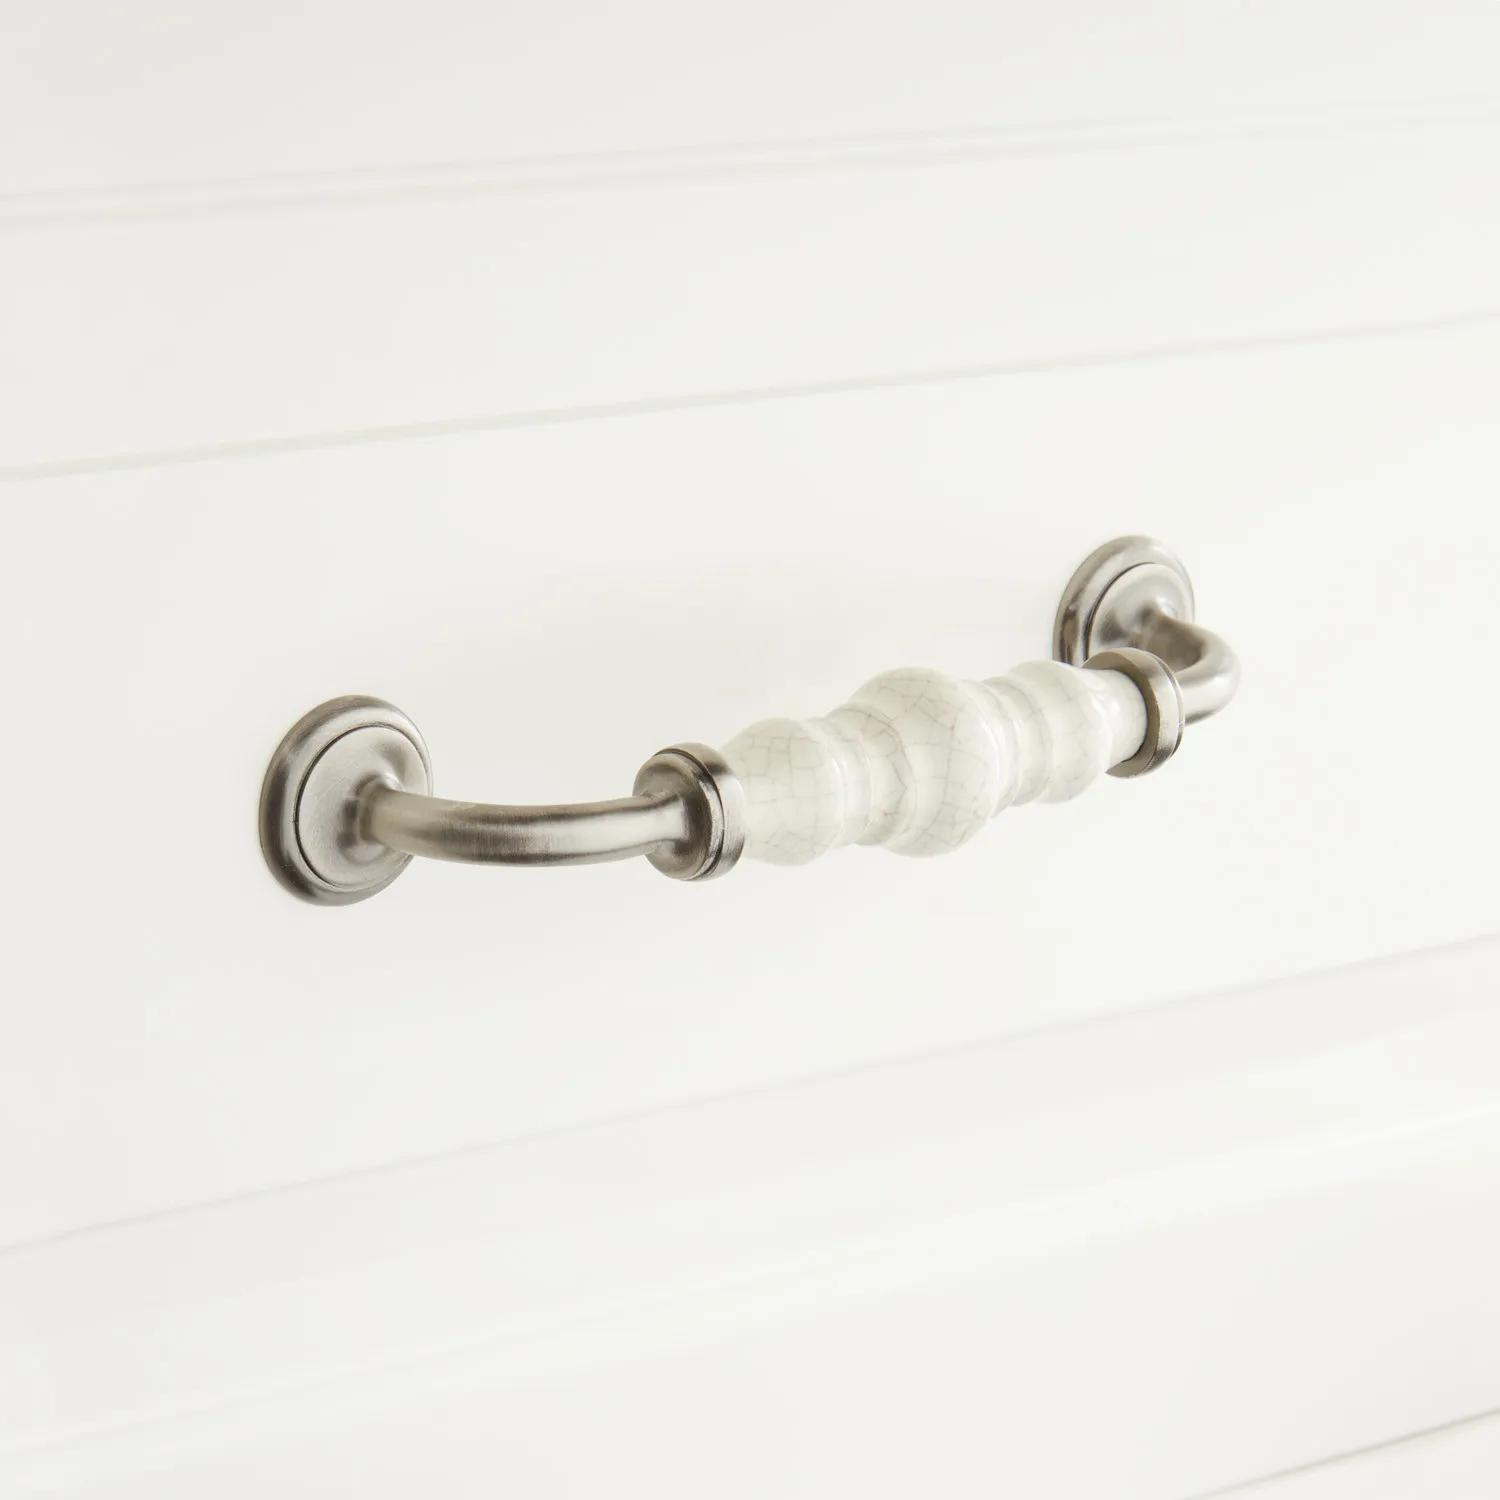 Broward Crackled Ceramic Cabinet Pull Hardware